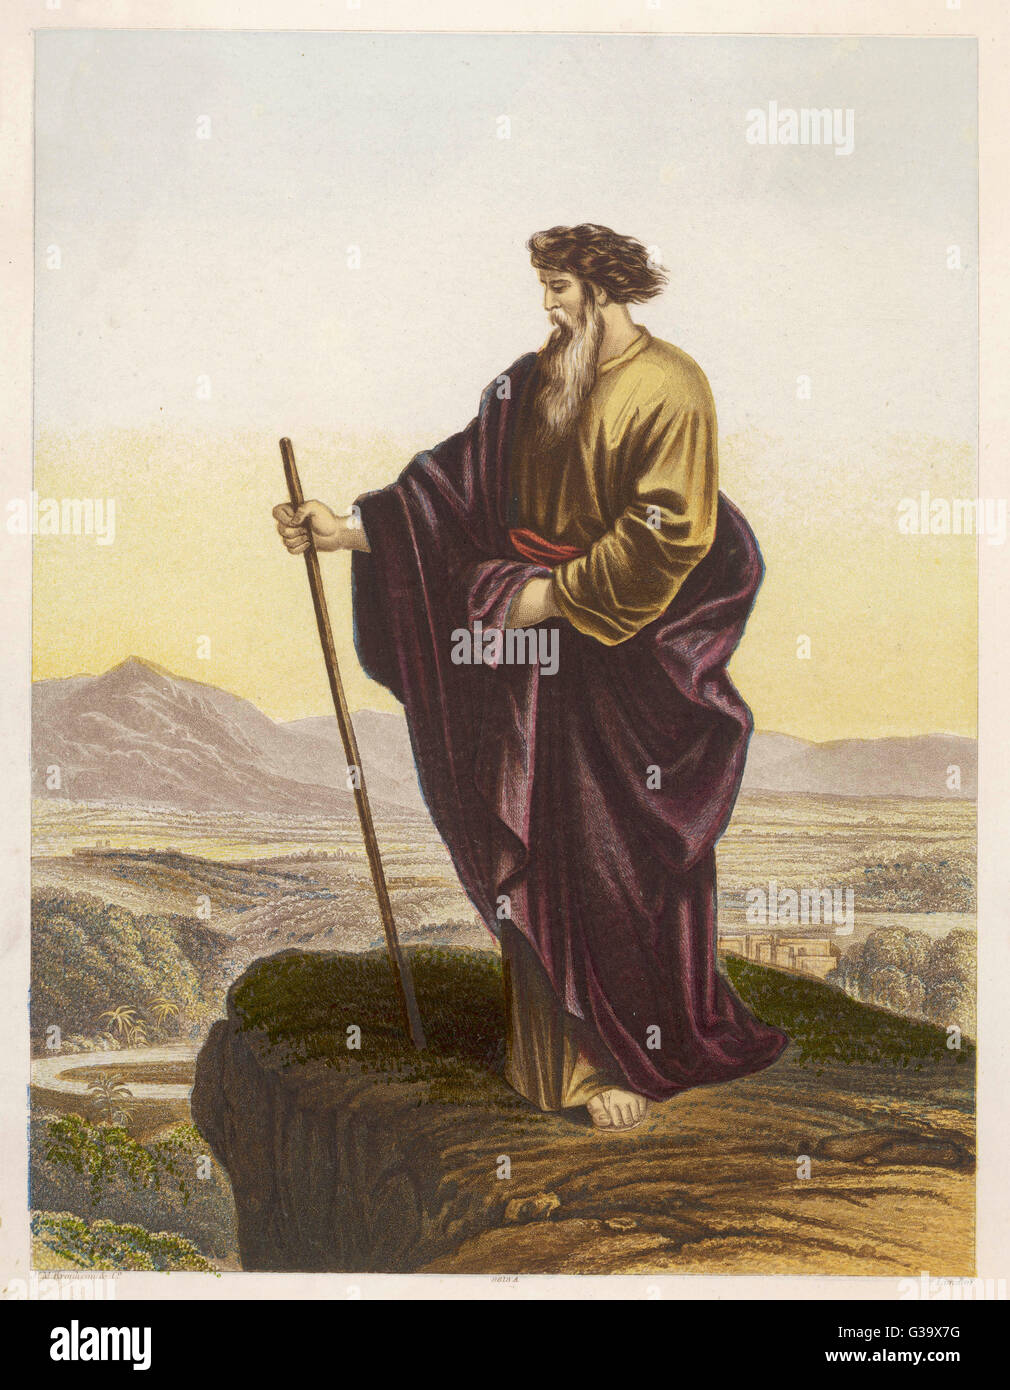 MOSES  Hebrew prophet and lawgiver  views the Promised Land  from Mount Nebo      Date: 14TH-13TH CENTURY BC - Stock Image